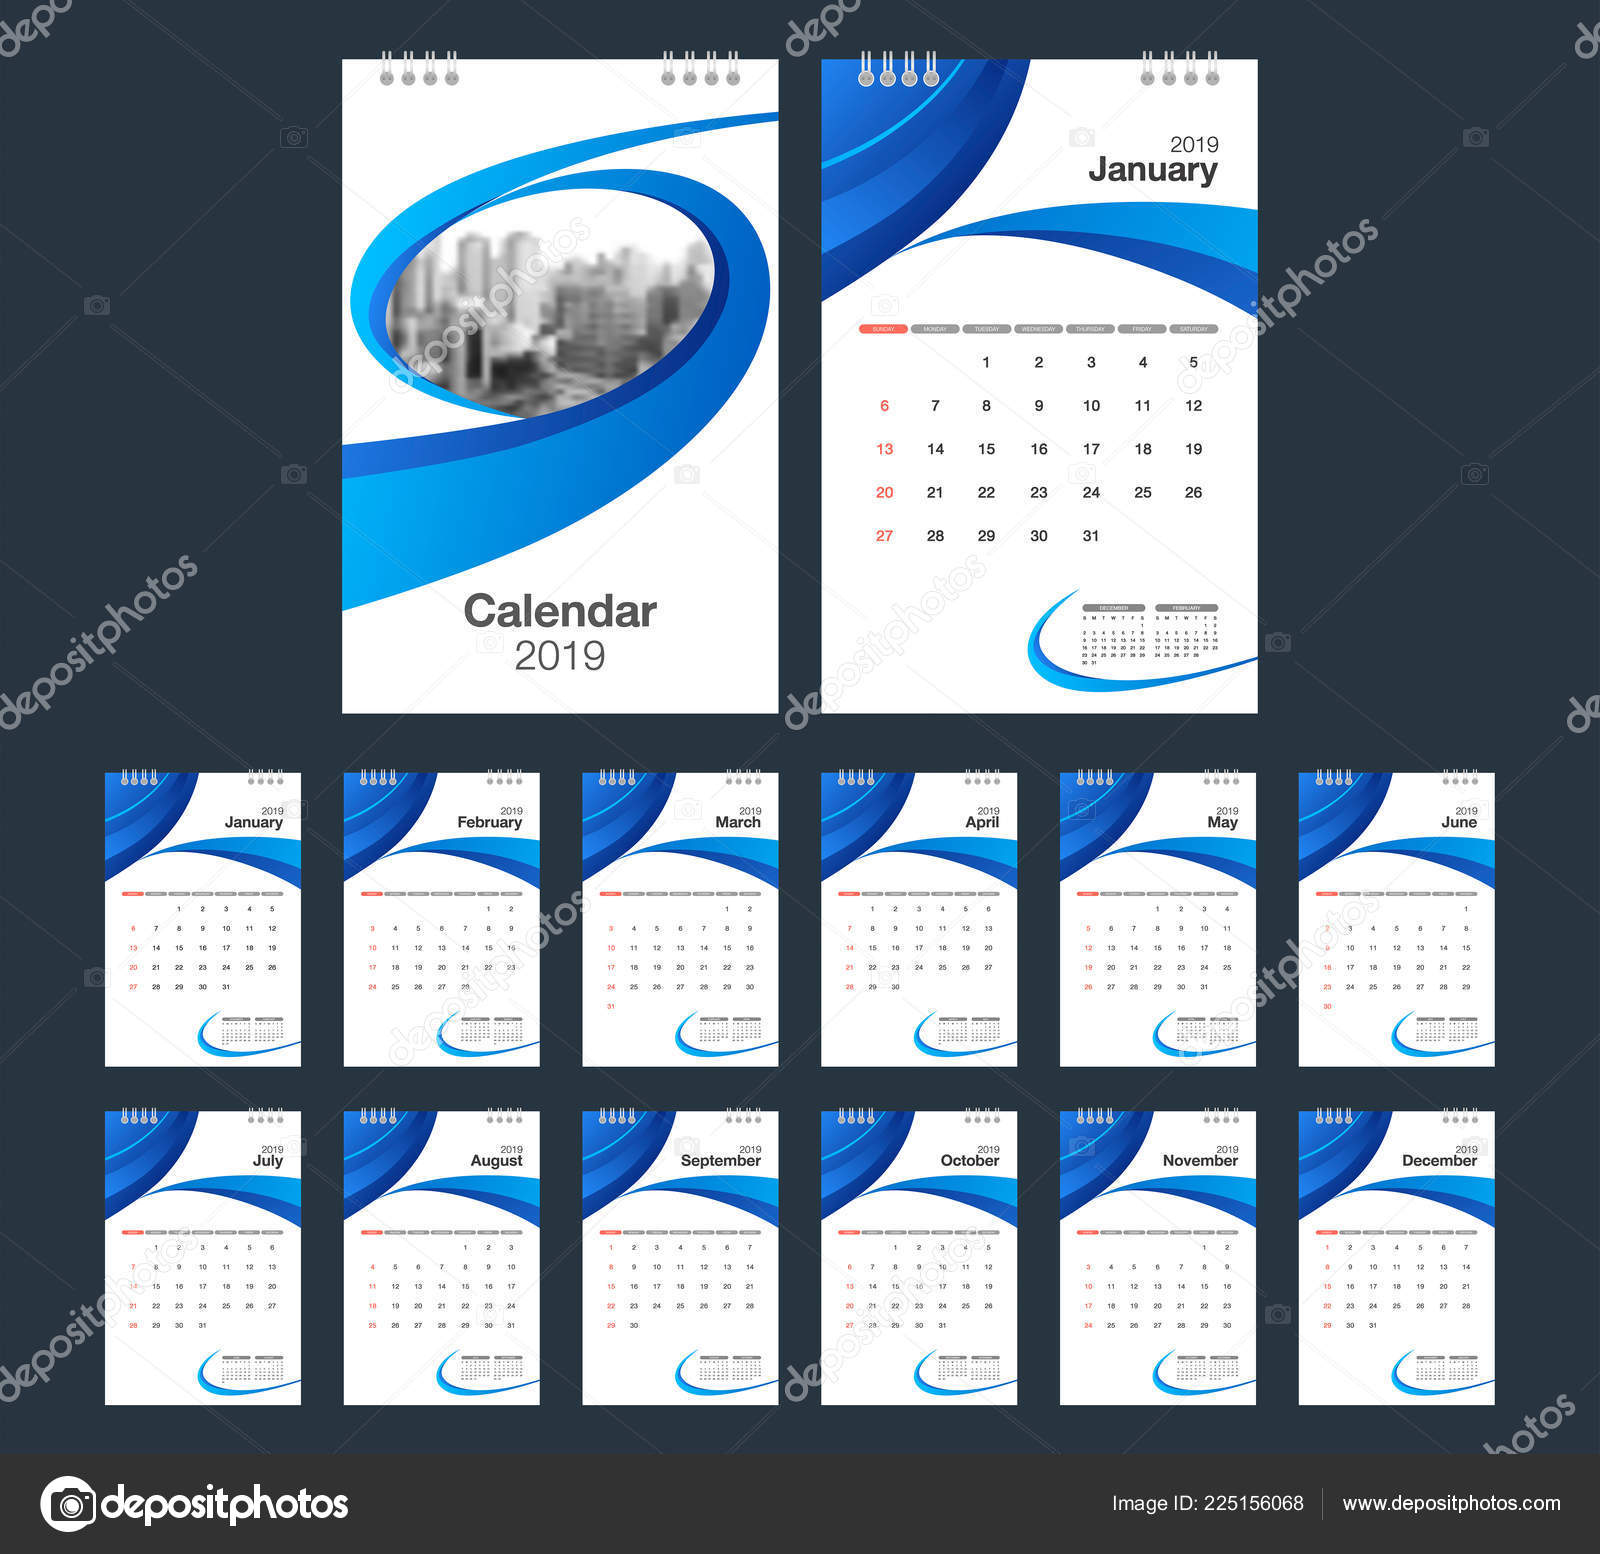 2019 Calendar Desk Calendar Modern Design Template Place Photo Week